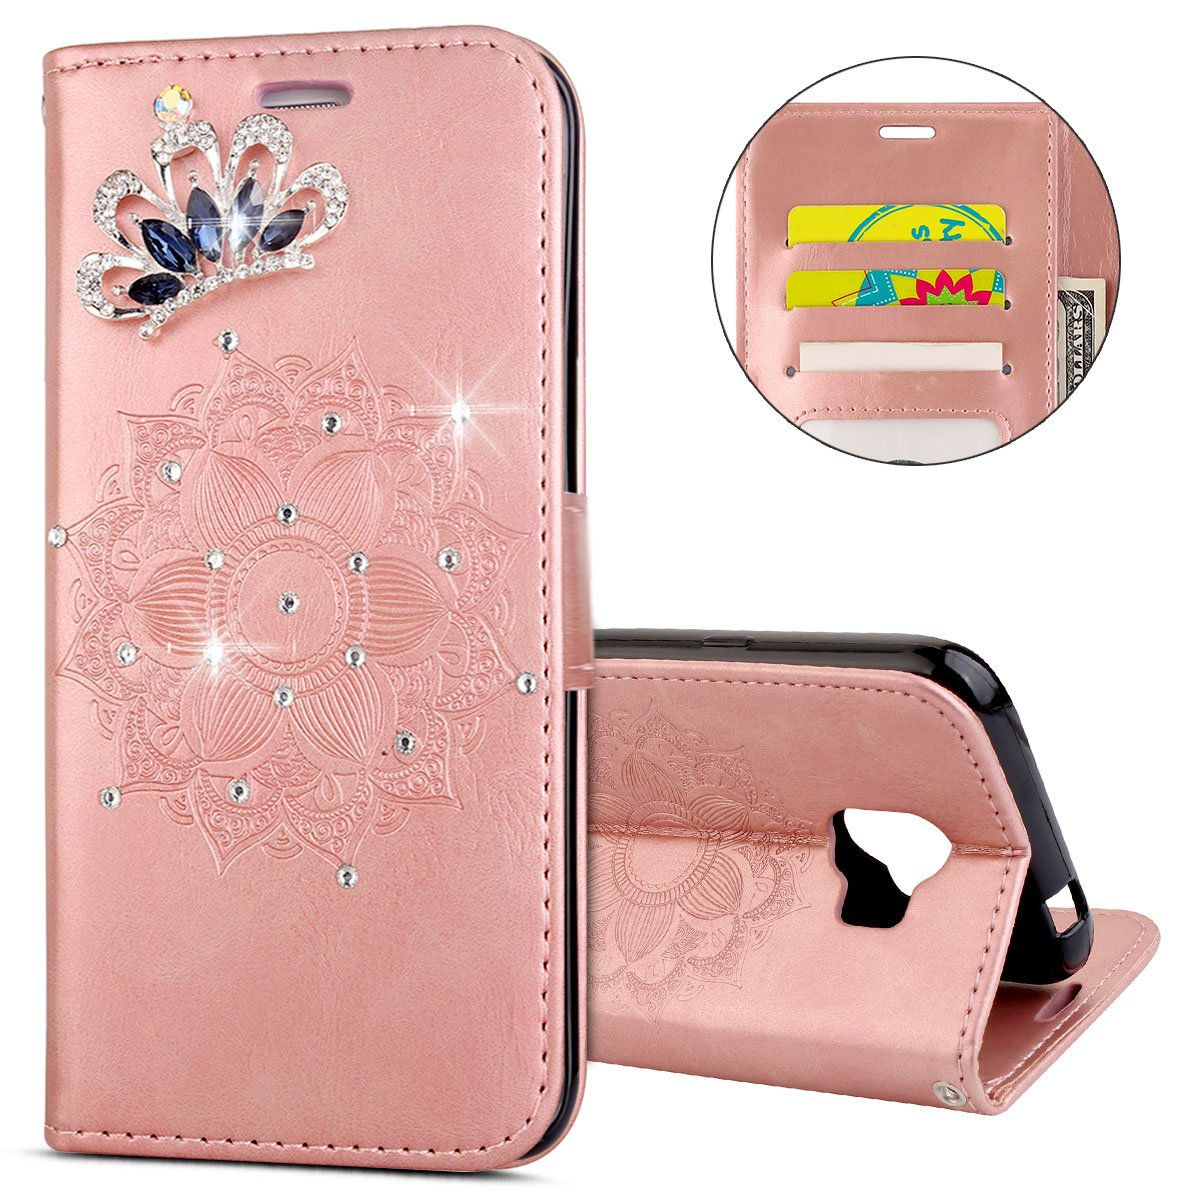 IKASEFU Galaxy J2 Pro 2018 Case,Clear Crown Rhinestone Diamond Bling Glitter Wallet with Card Holder Emboss Mandala Floral Pu Leather Magnetic Flip Protective Cover for Samsung J2 Pro 2018,Rosa Gold